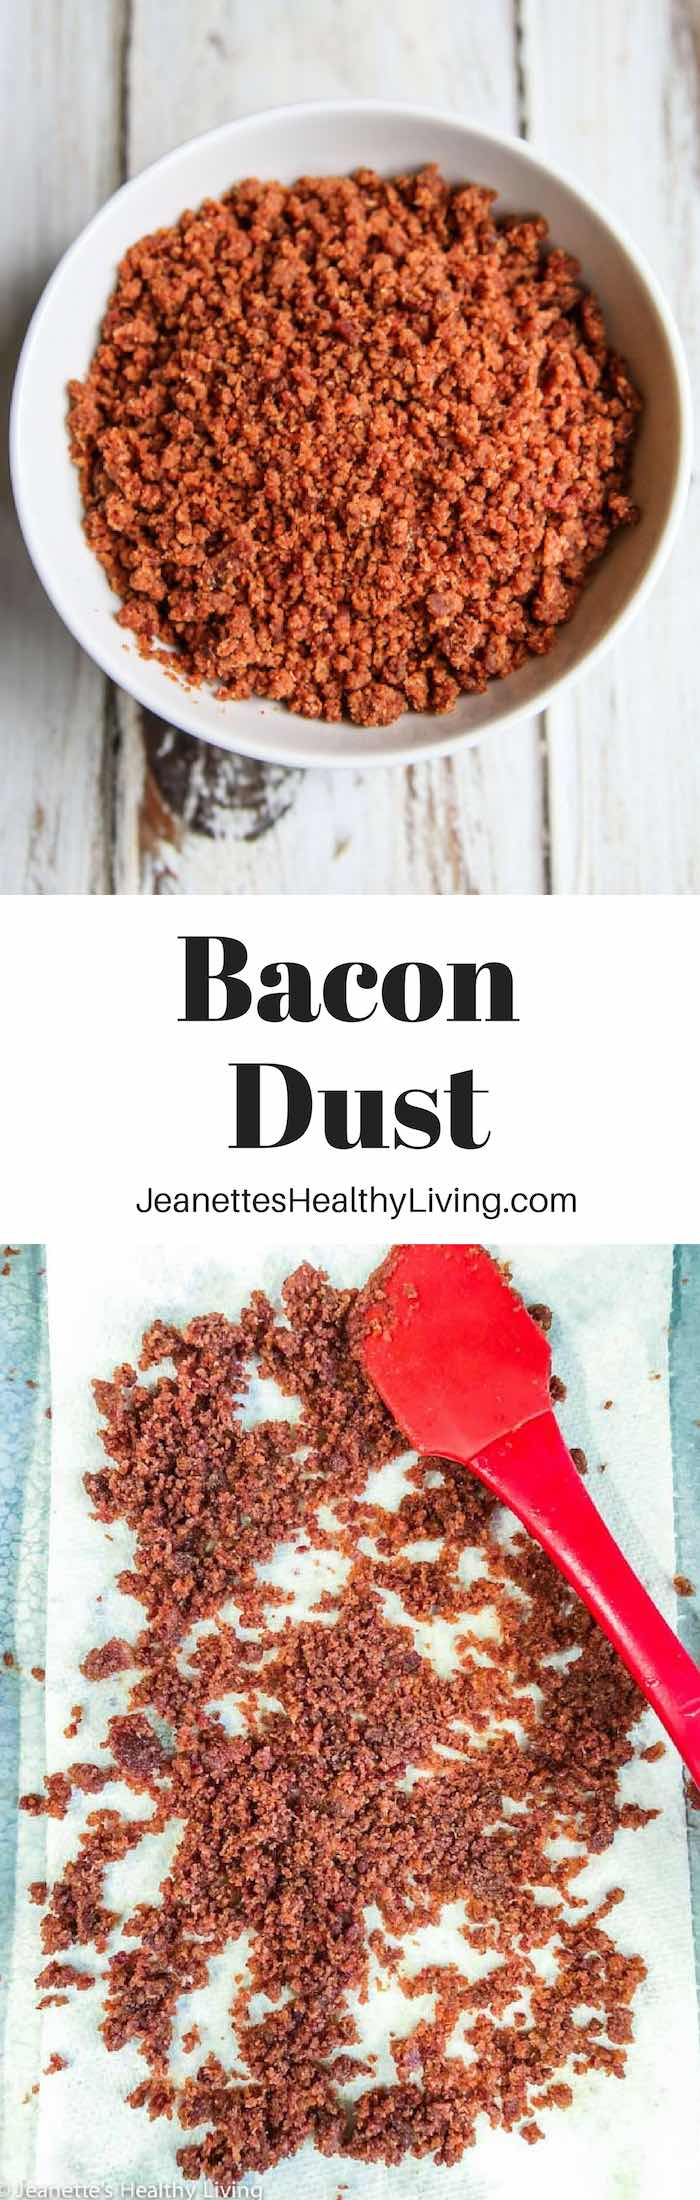 Bacon Dust - sprinkle on deviled eggs, avocado toast, and more